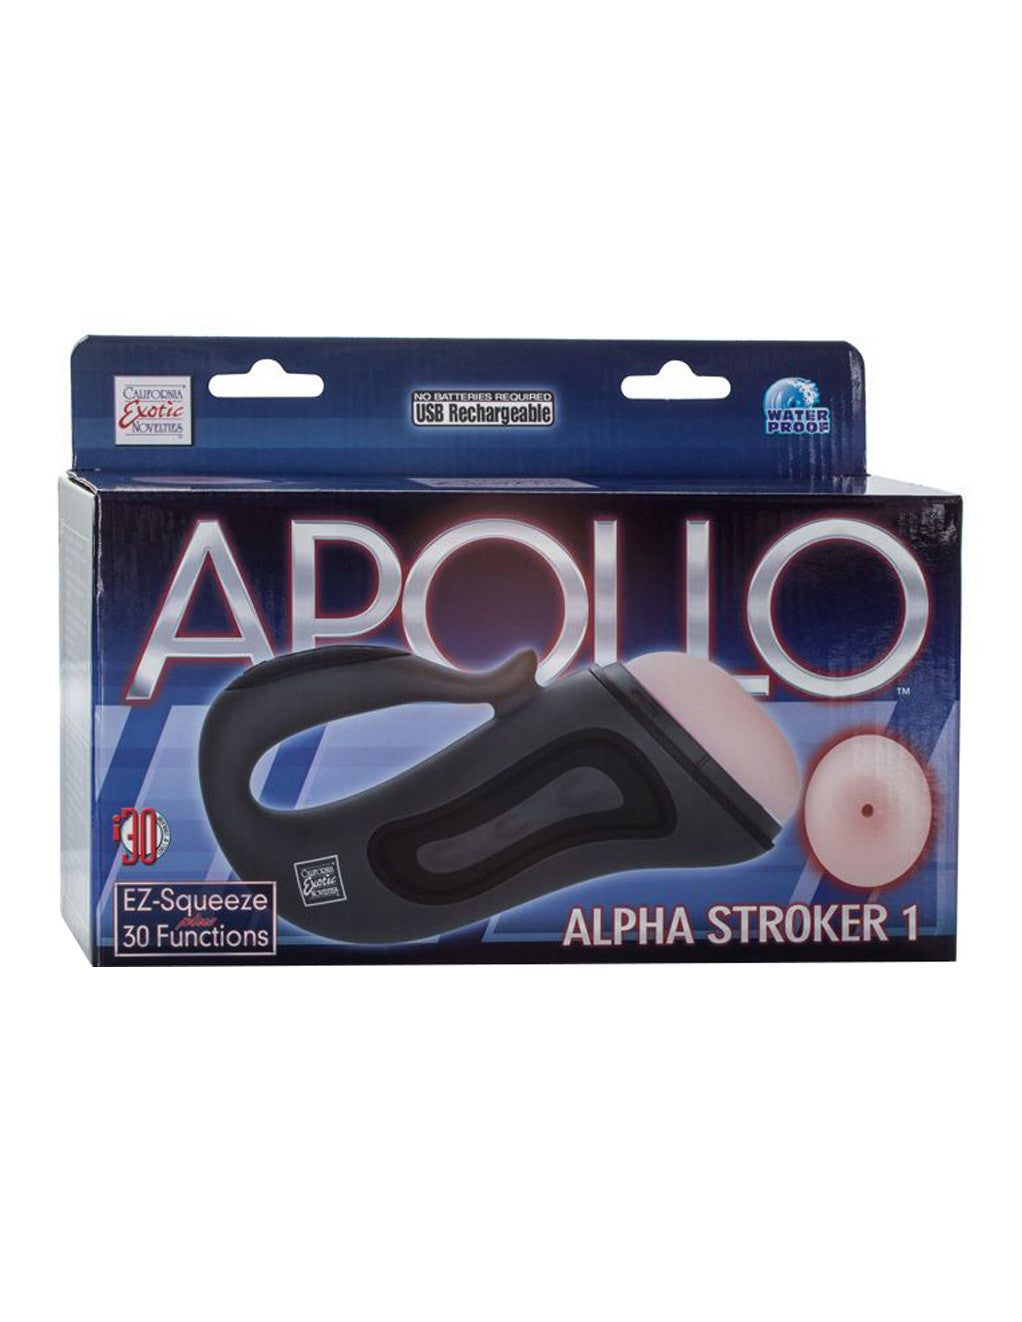 Apollo by Cal Exotics Alpha Stroker Package